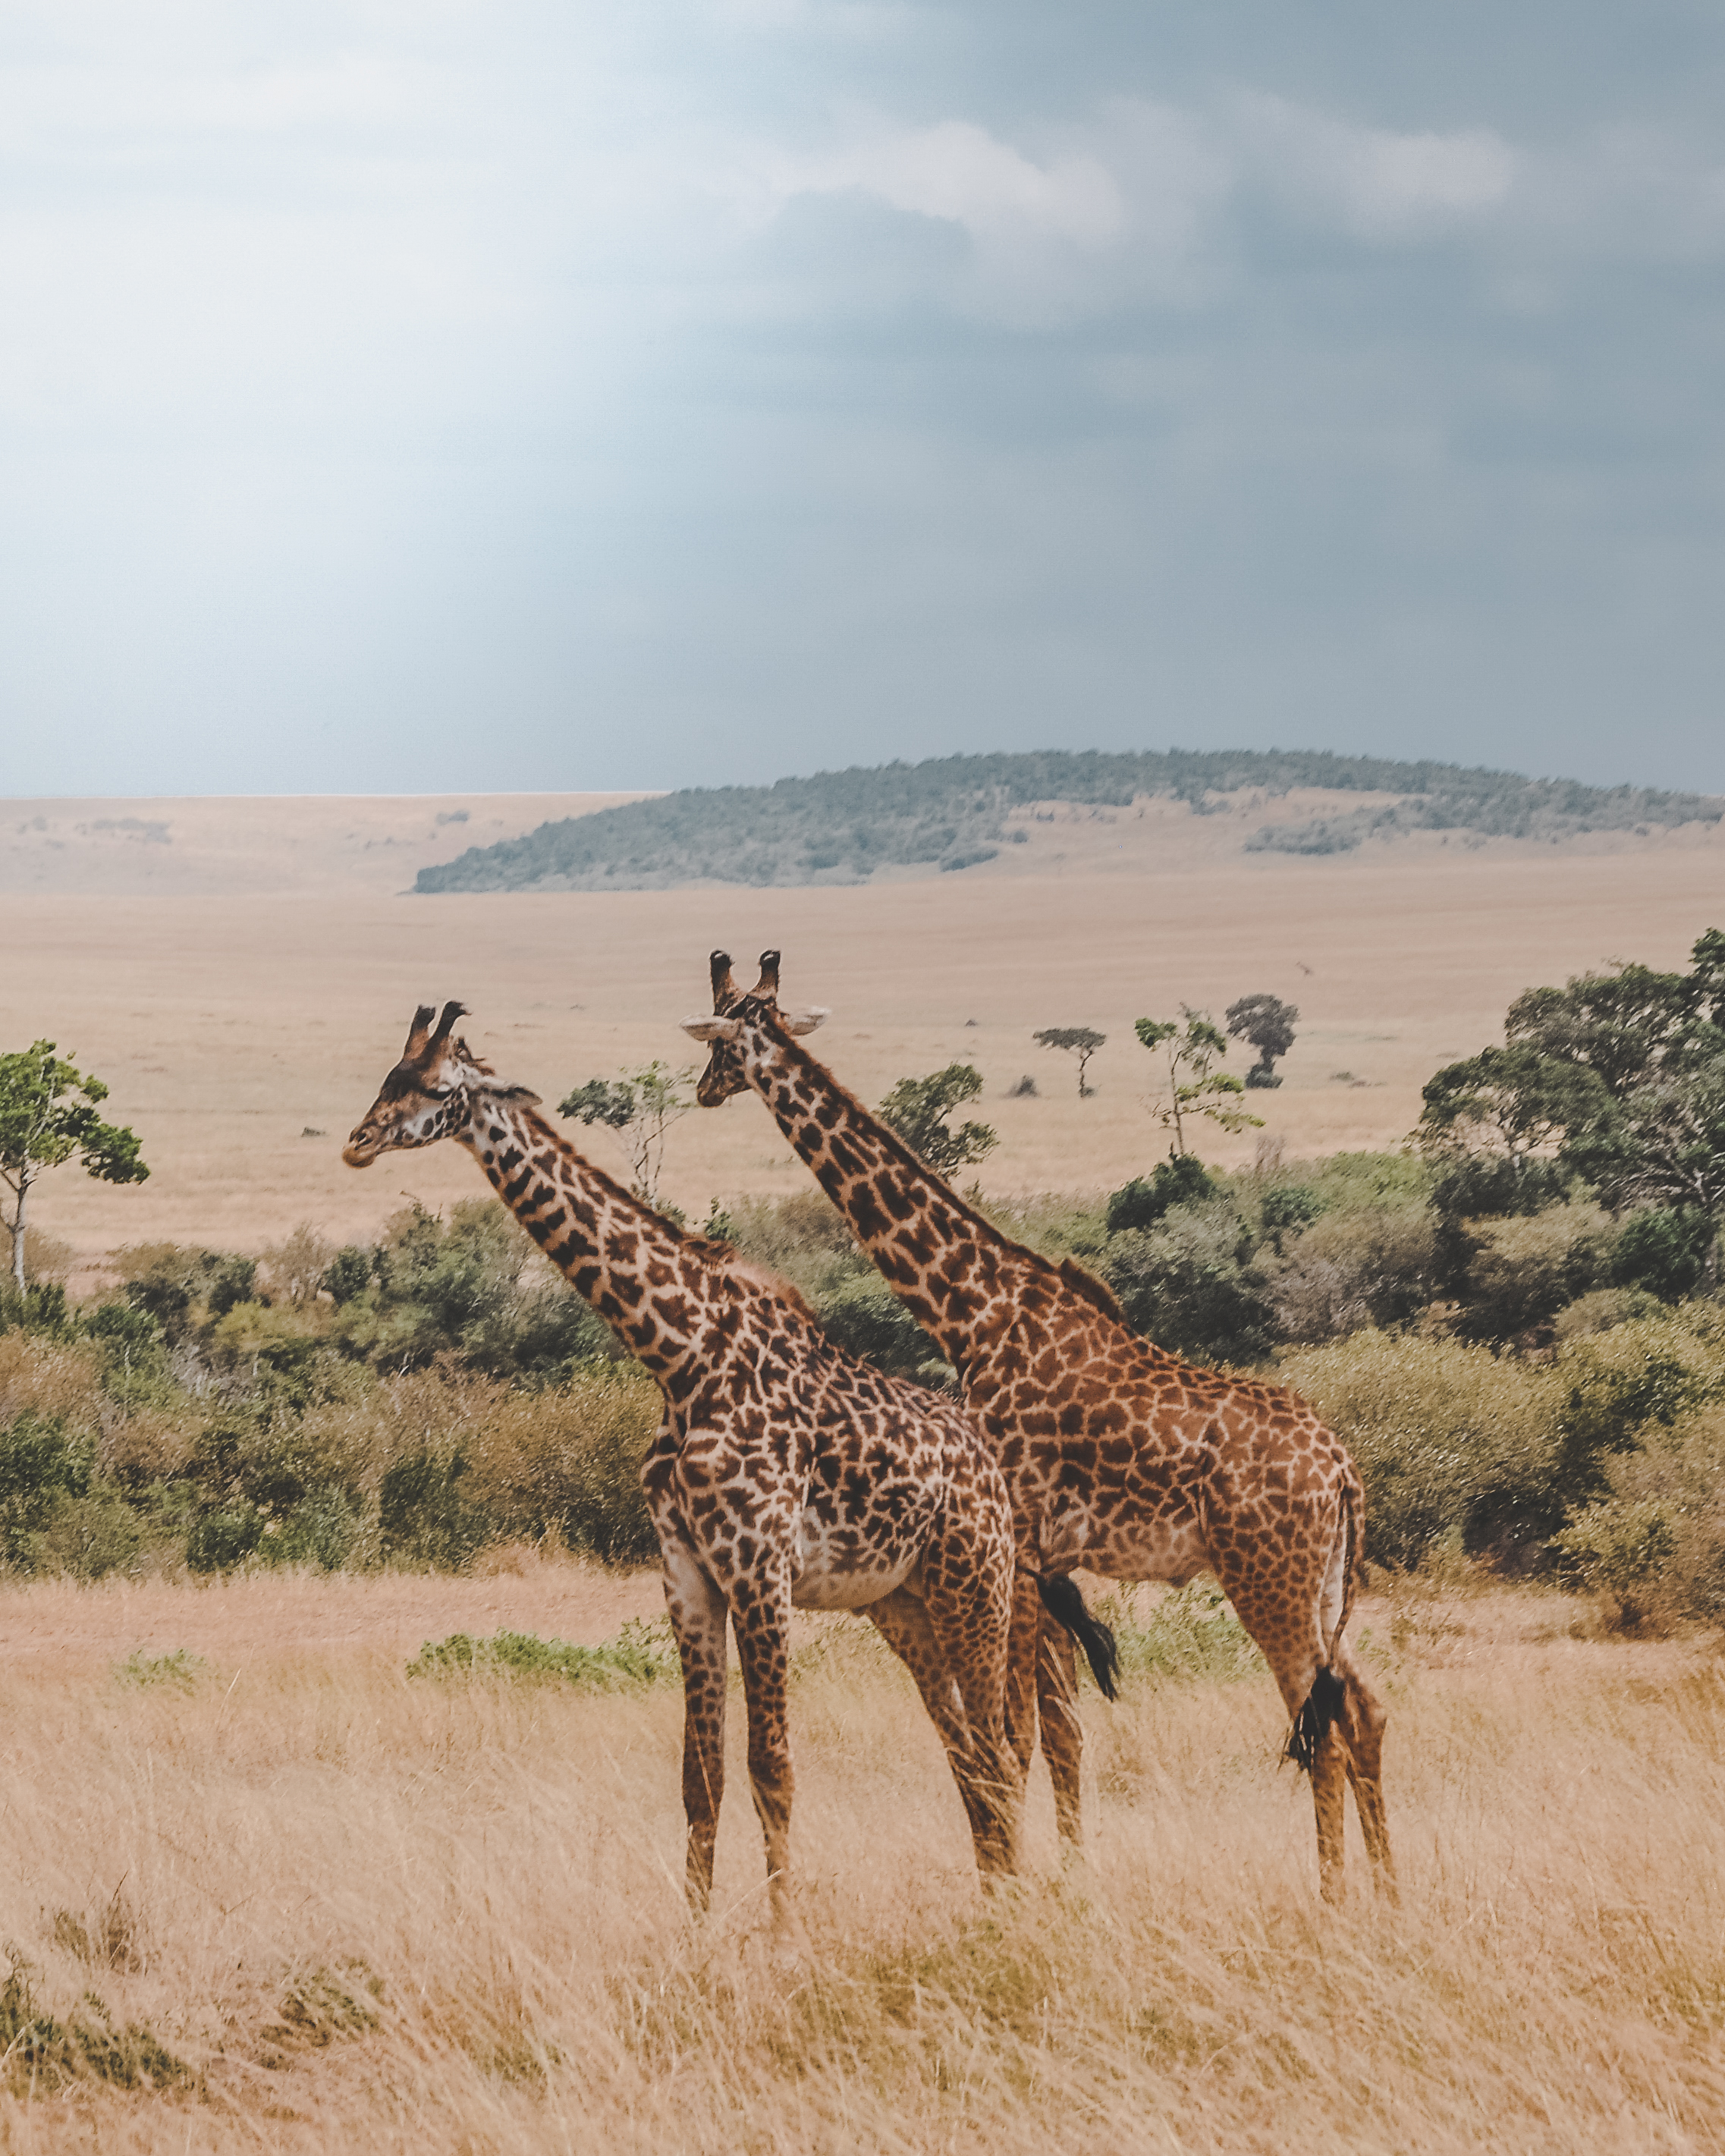 A travel day on safari is always a 'game drive'.